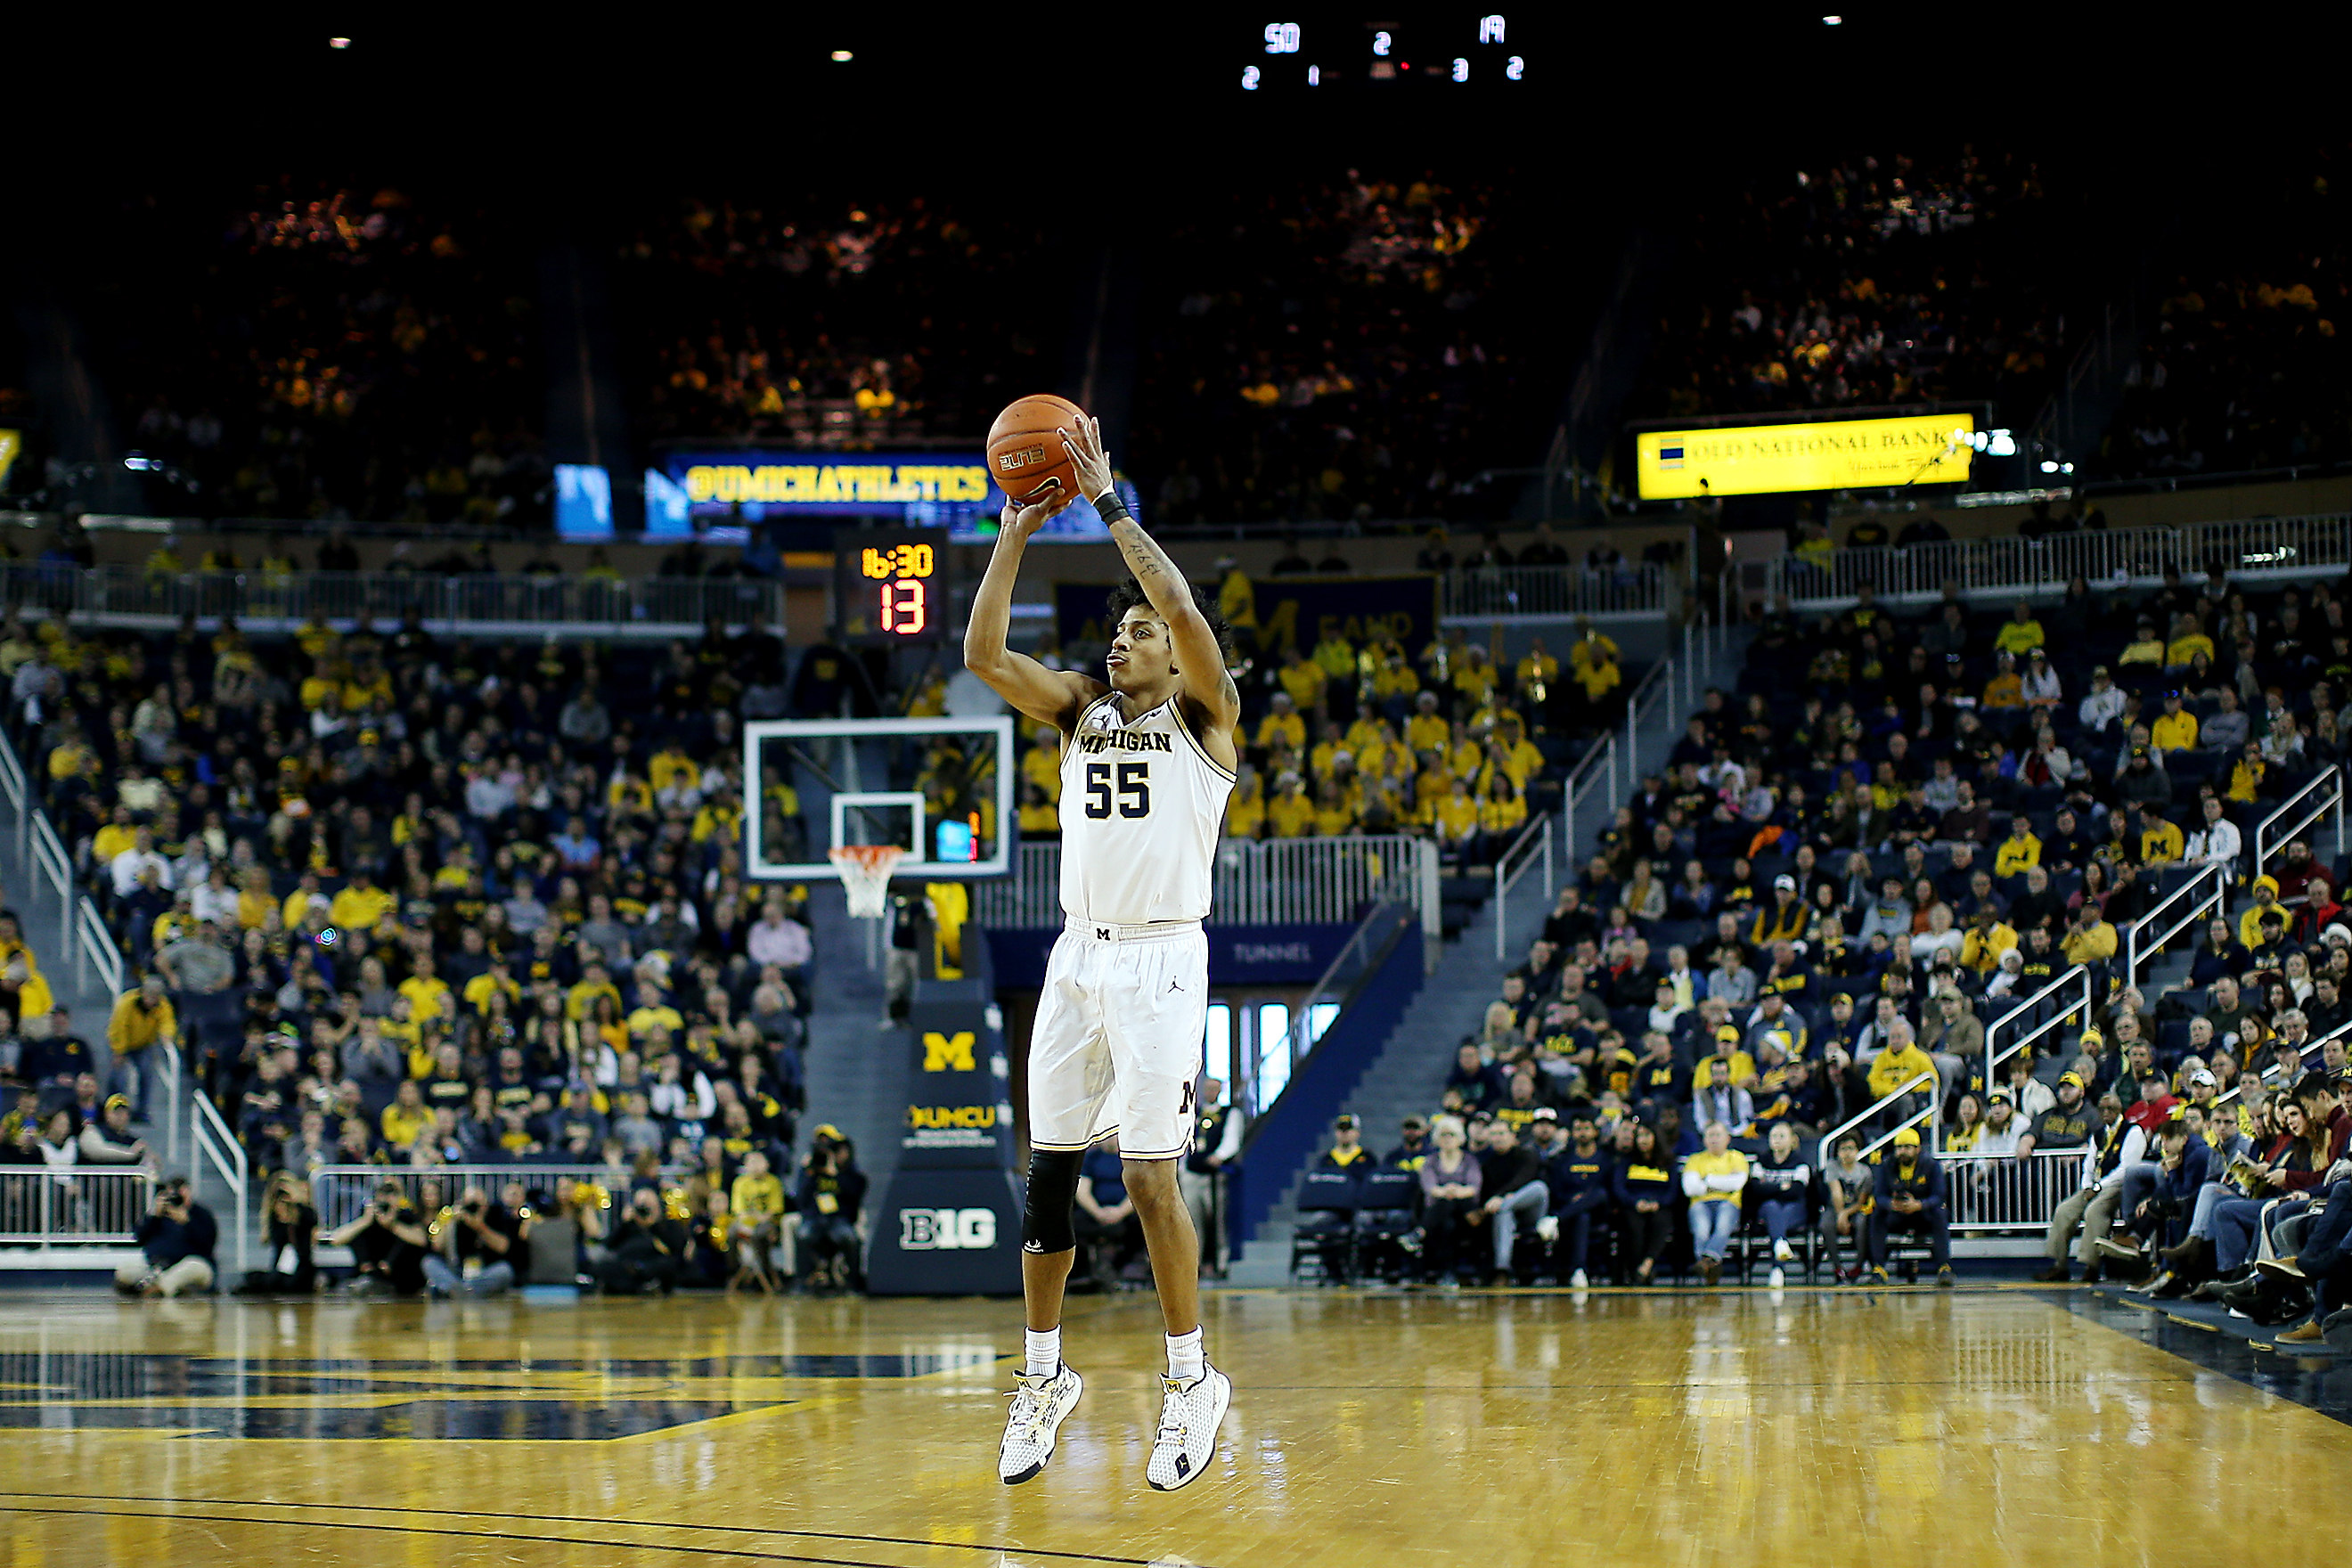 As Michigan S Ncaa Tourney Outlook Gets Murkier Team